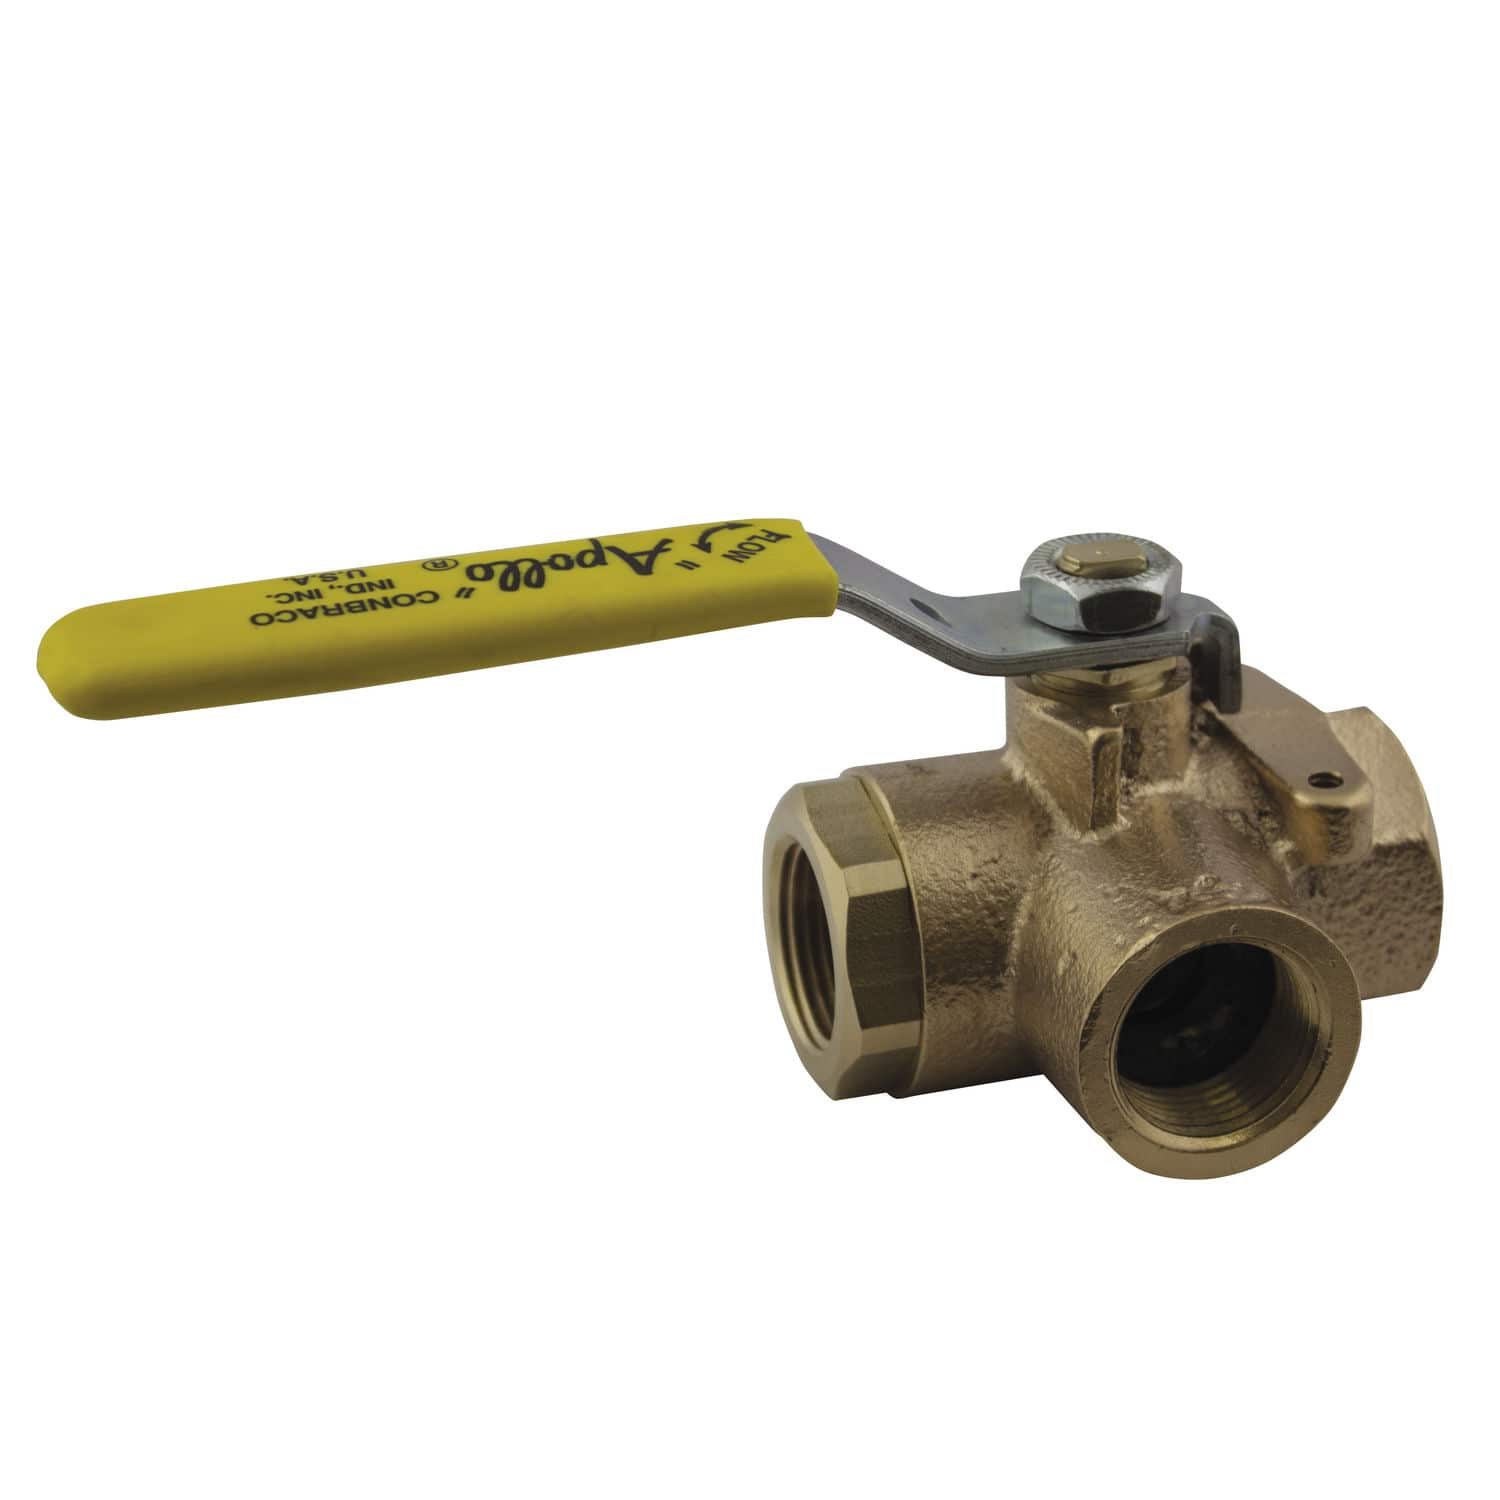 Ball valve / lever / control / for water - 70-600 - Conbraco Industries